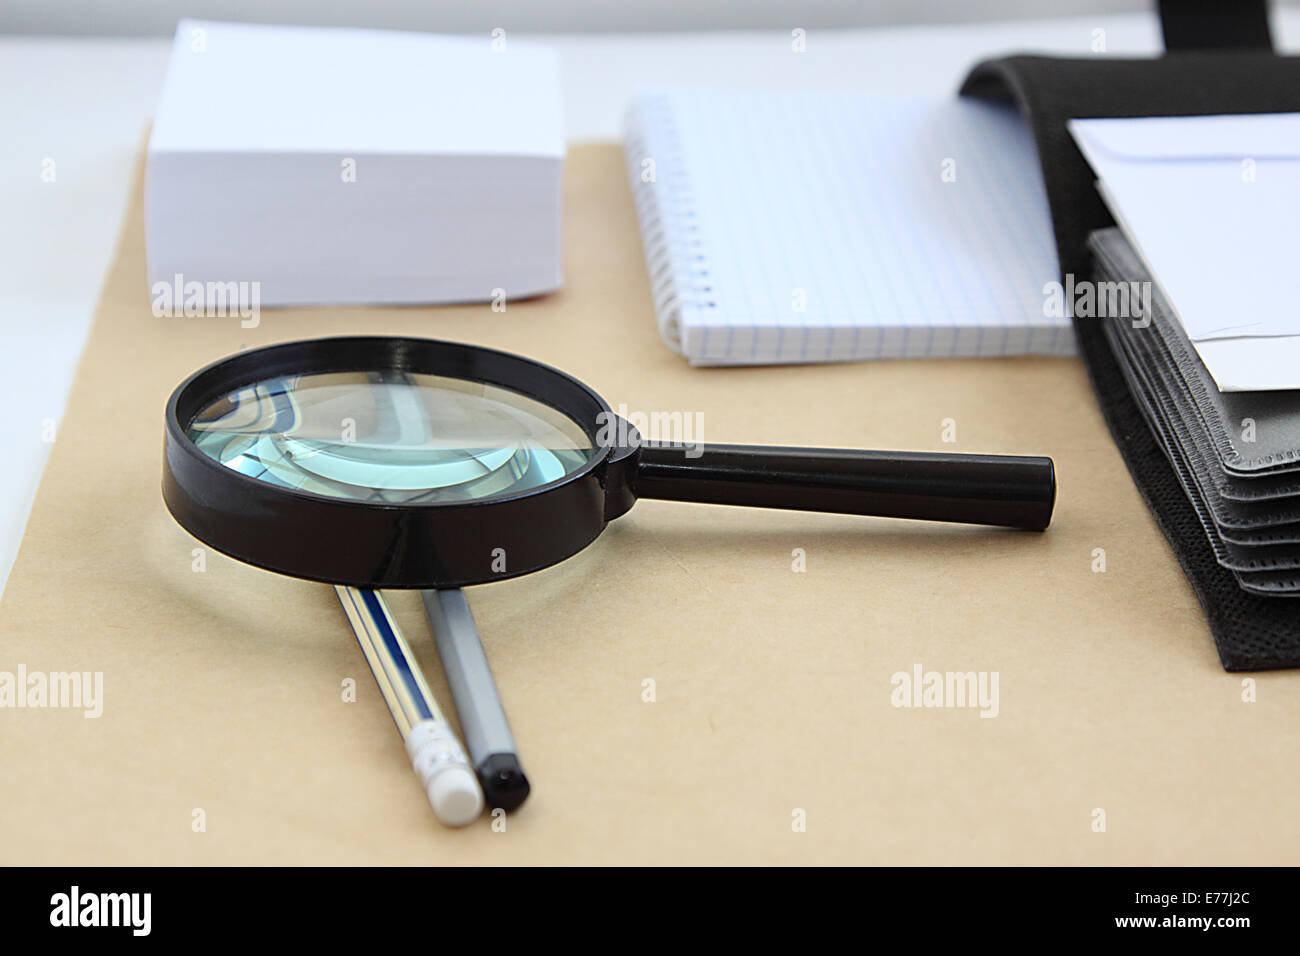 Paper notebook and magnifying glass. - Stock Image